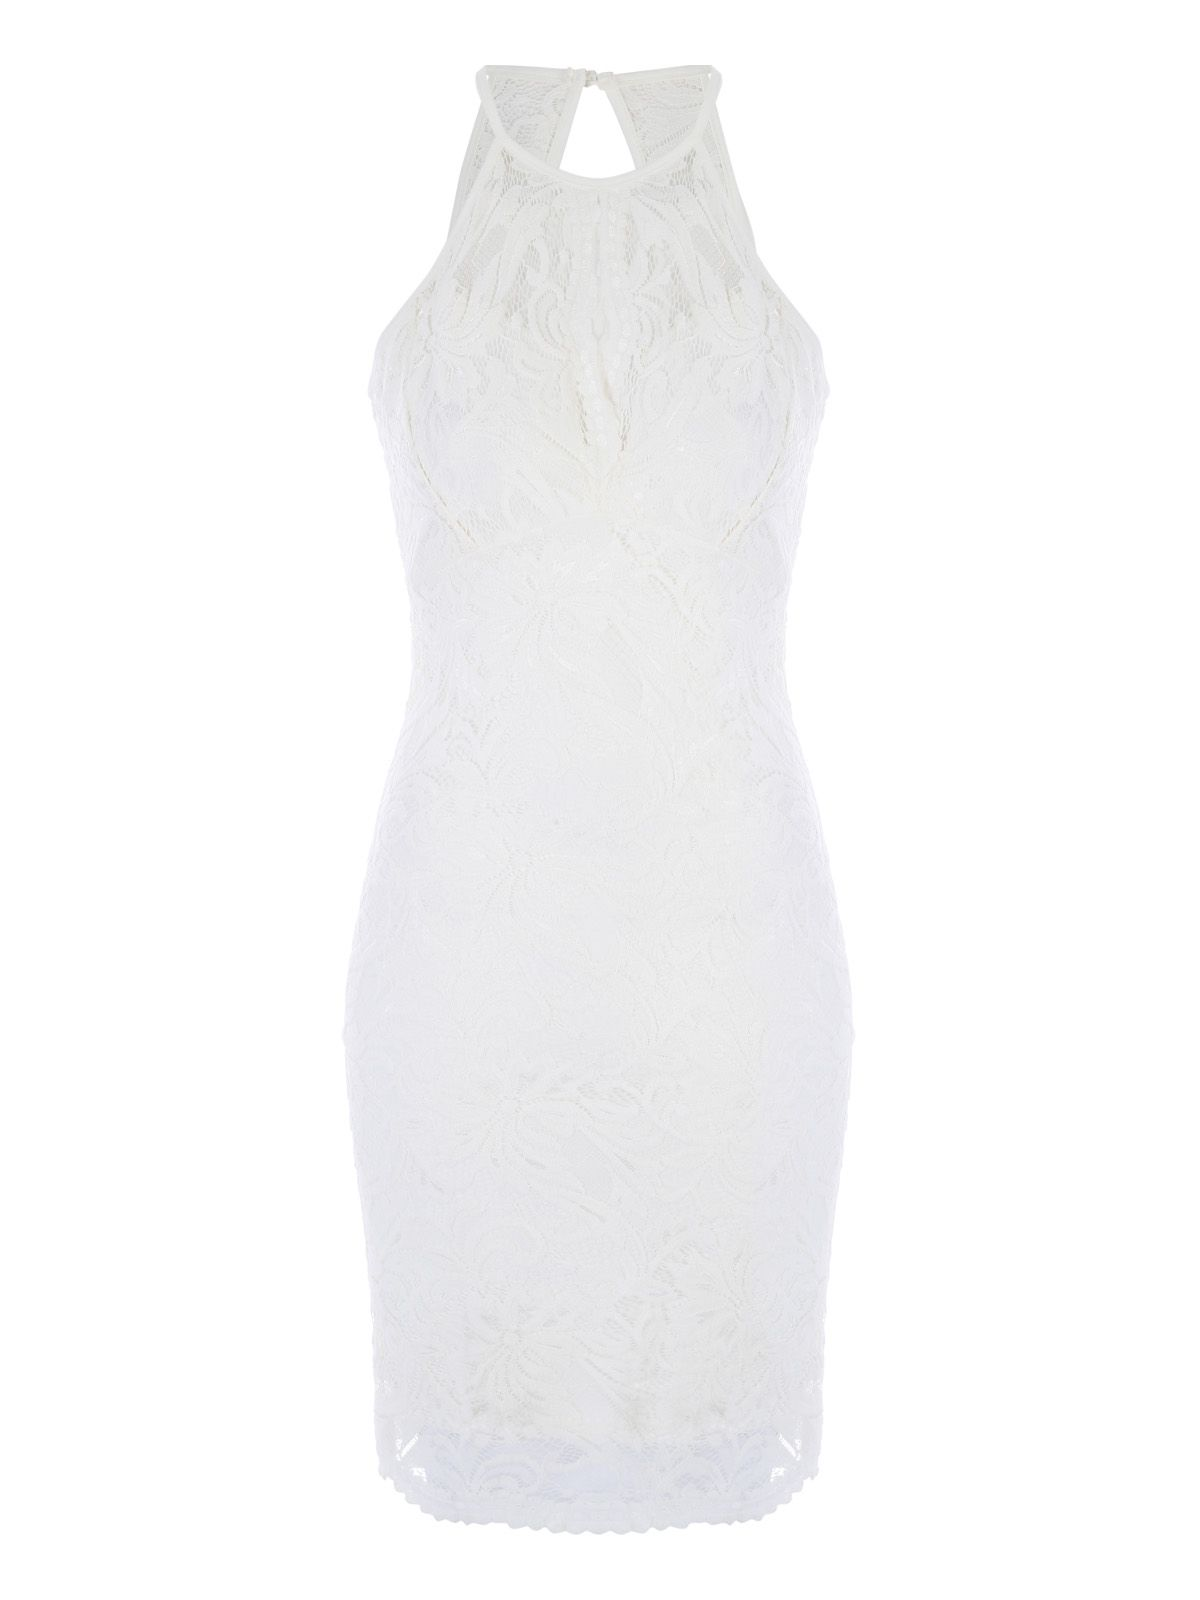 Jane Norman Racer Neck Bodycon Dress, White